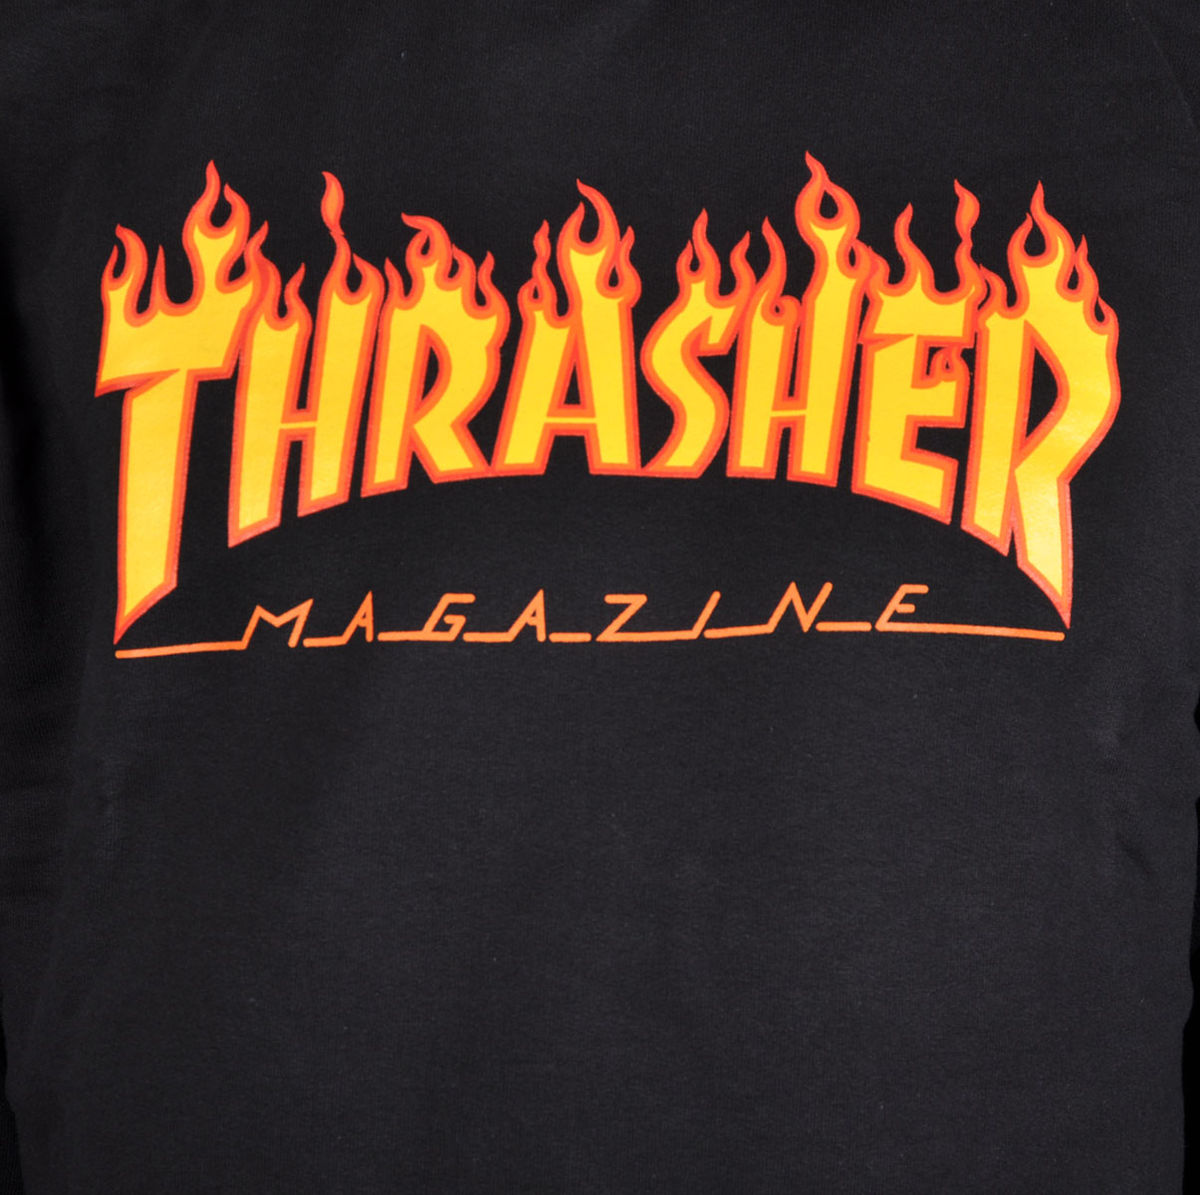 Thrasher logo black - photo#25